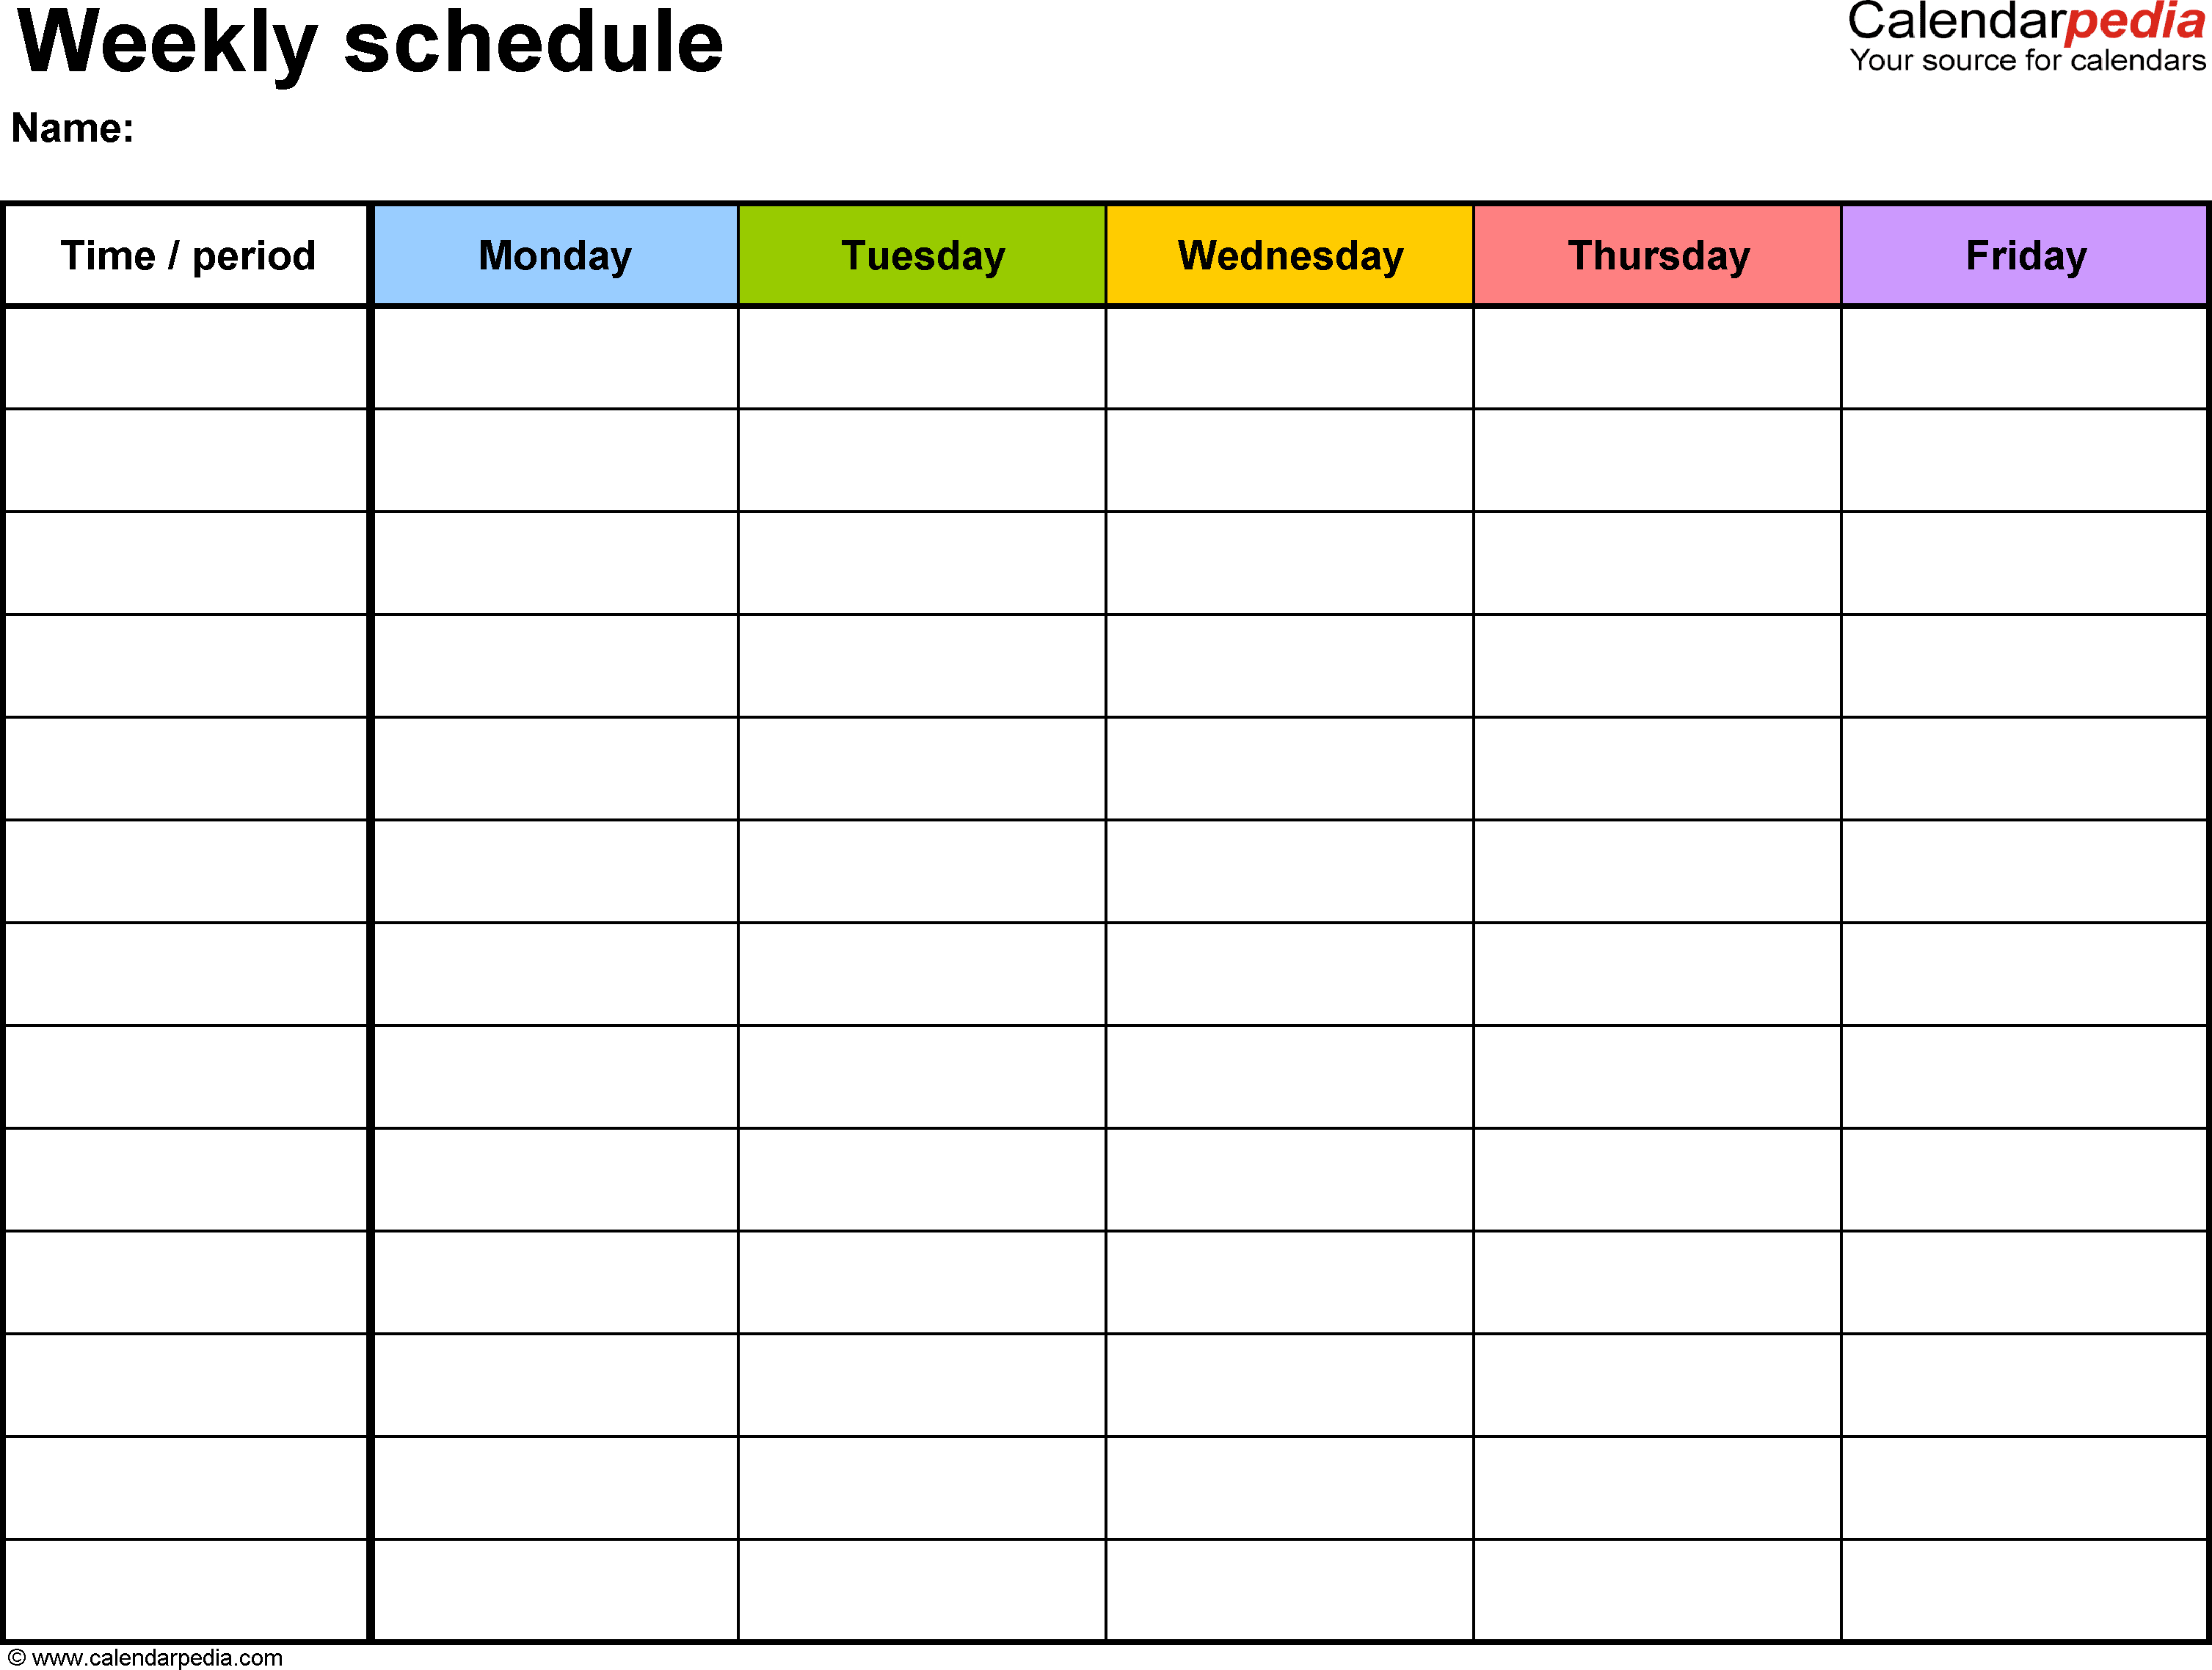 Free Weekly Schedule Templates For Word - 18 Templates inside Blank Planner Weekly Planner